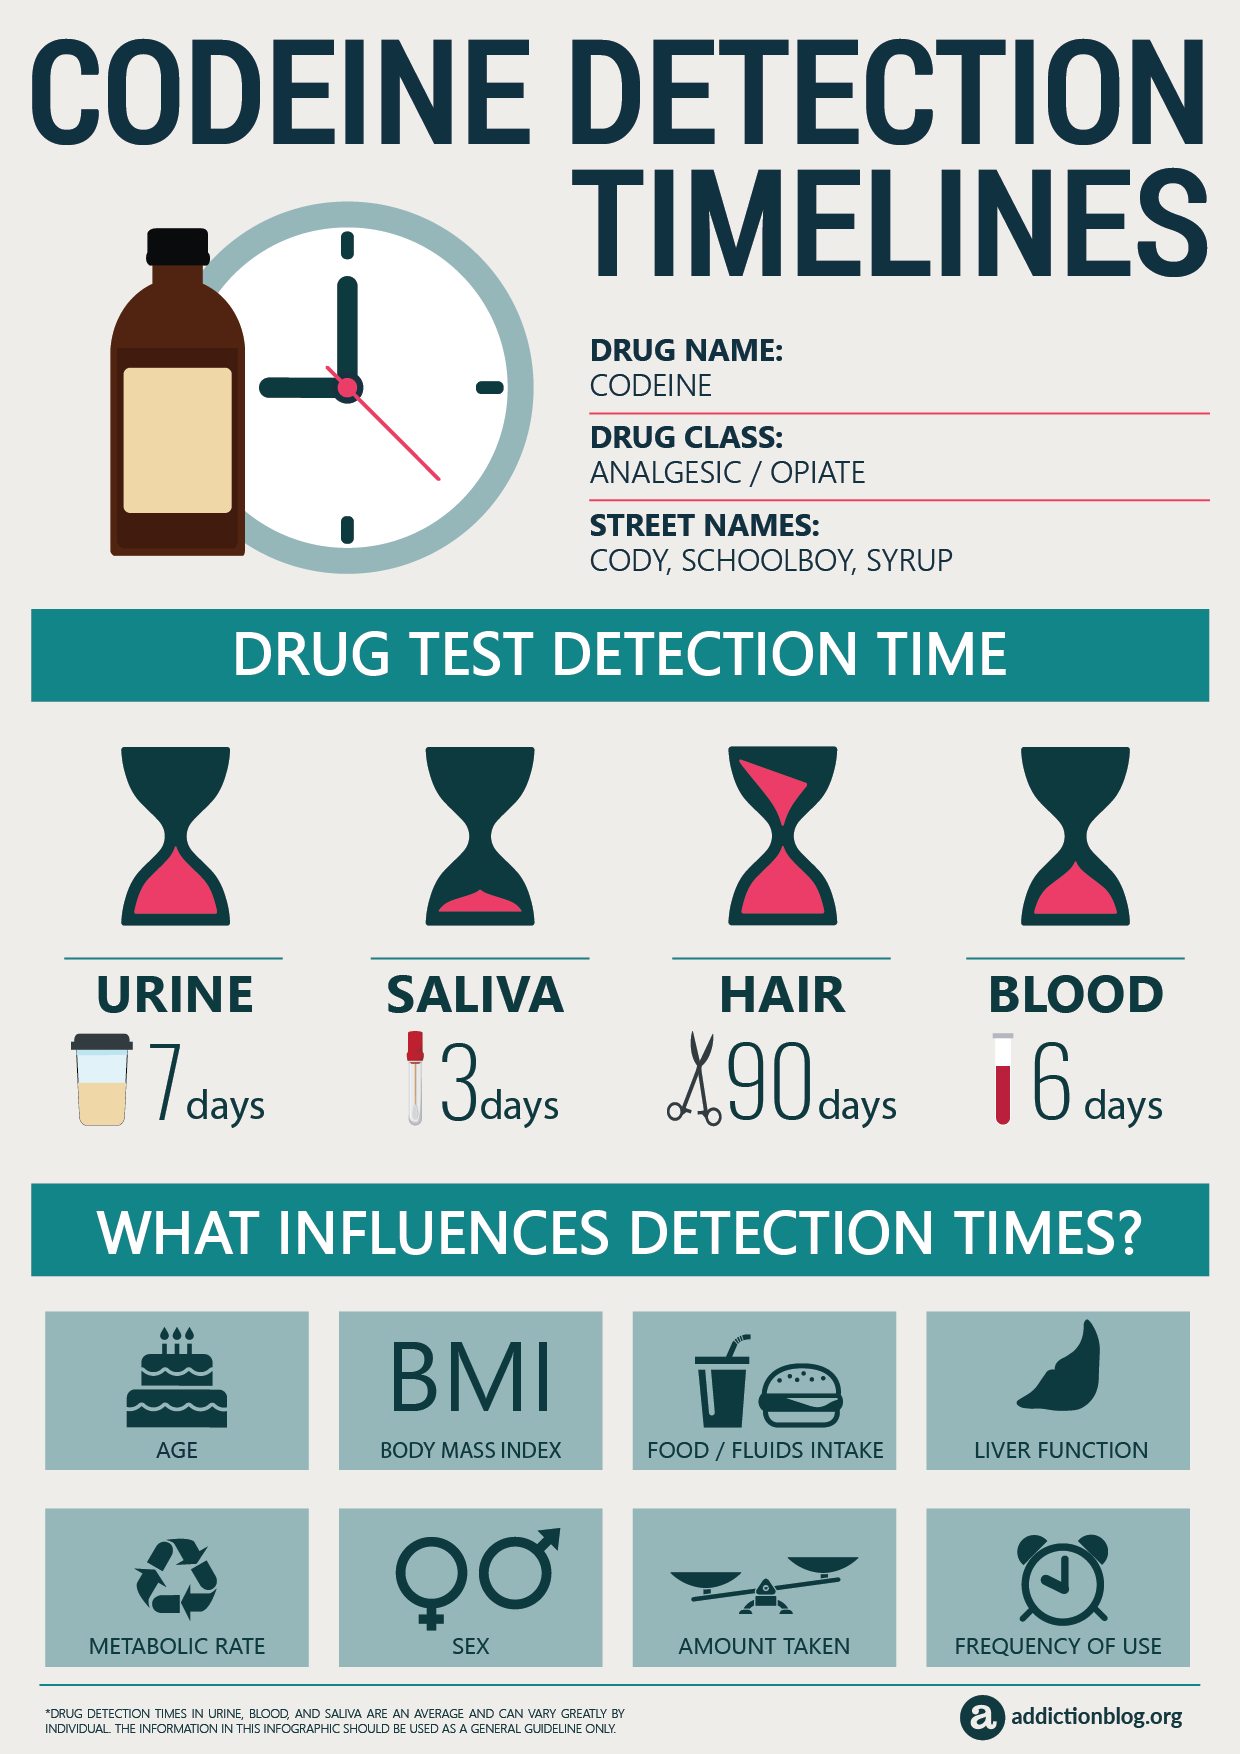 Codeine Detection Timelines [INFOGRAPHIC]